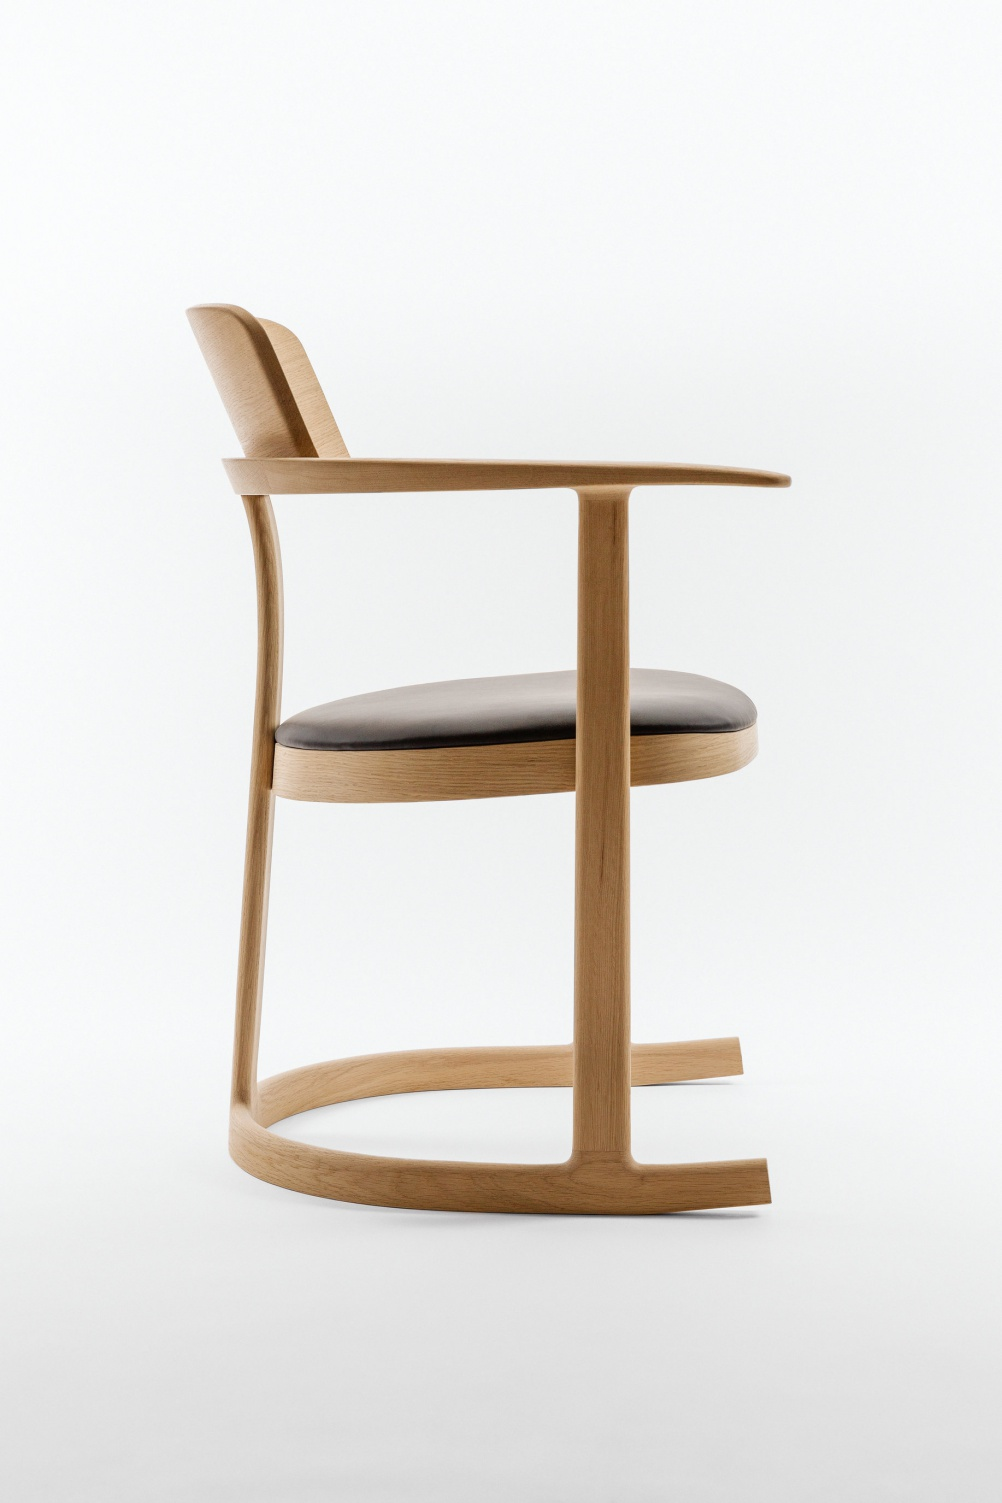 Chair designed for Bodleian Library